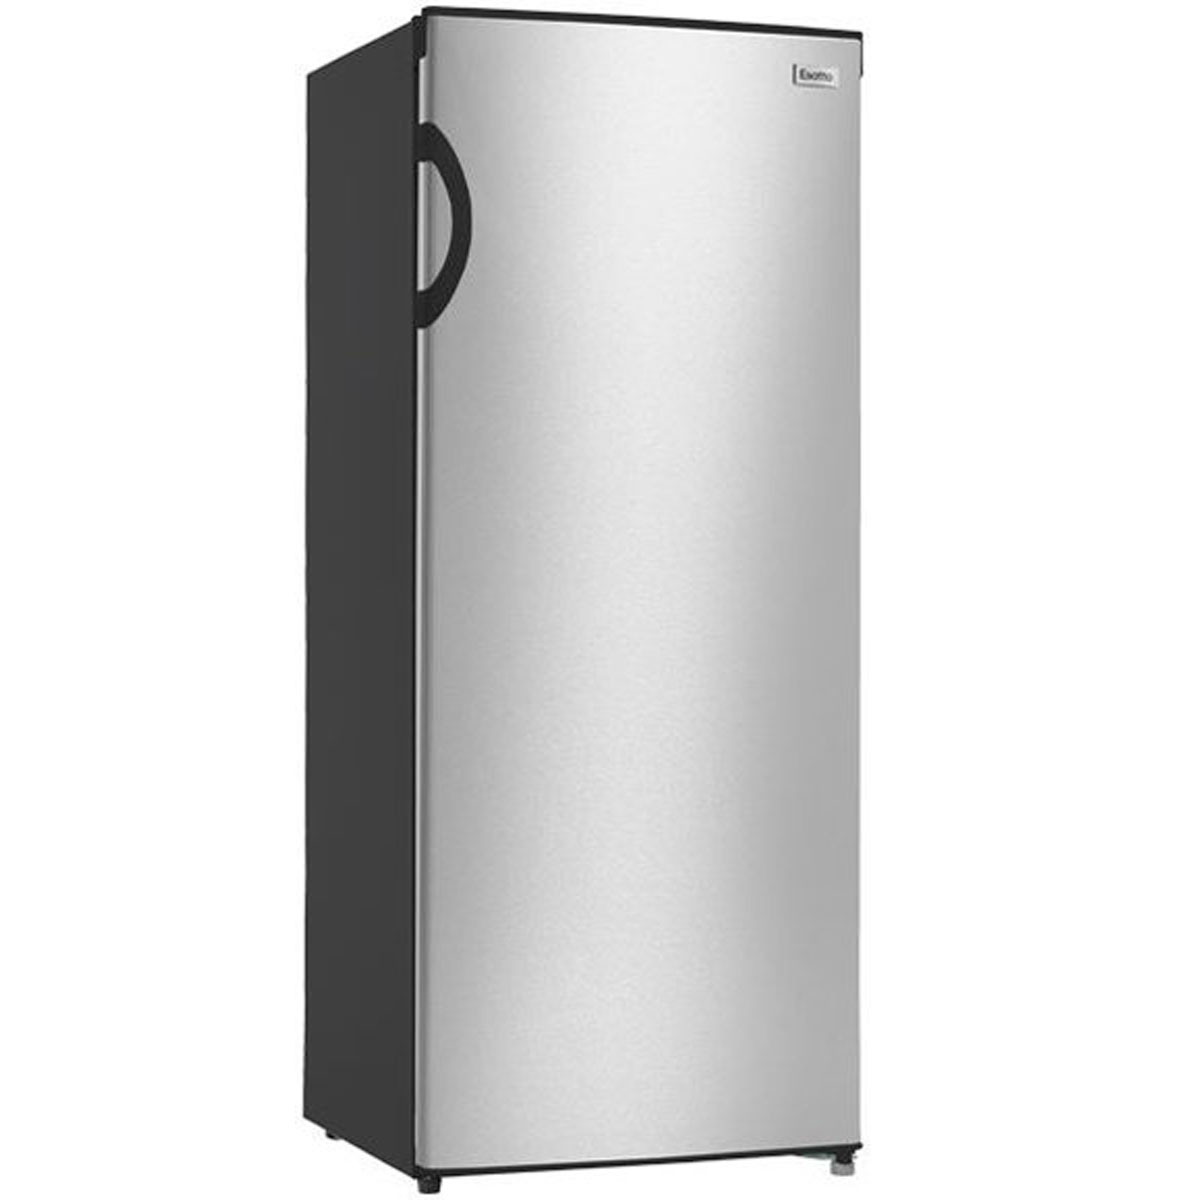 Esatto EUF172S 172L Upright Freezer